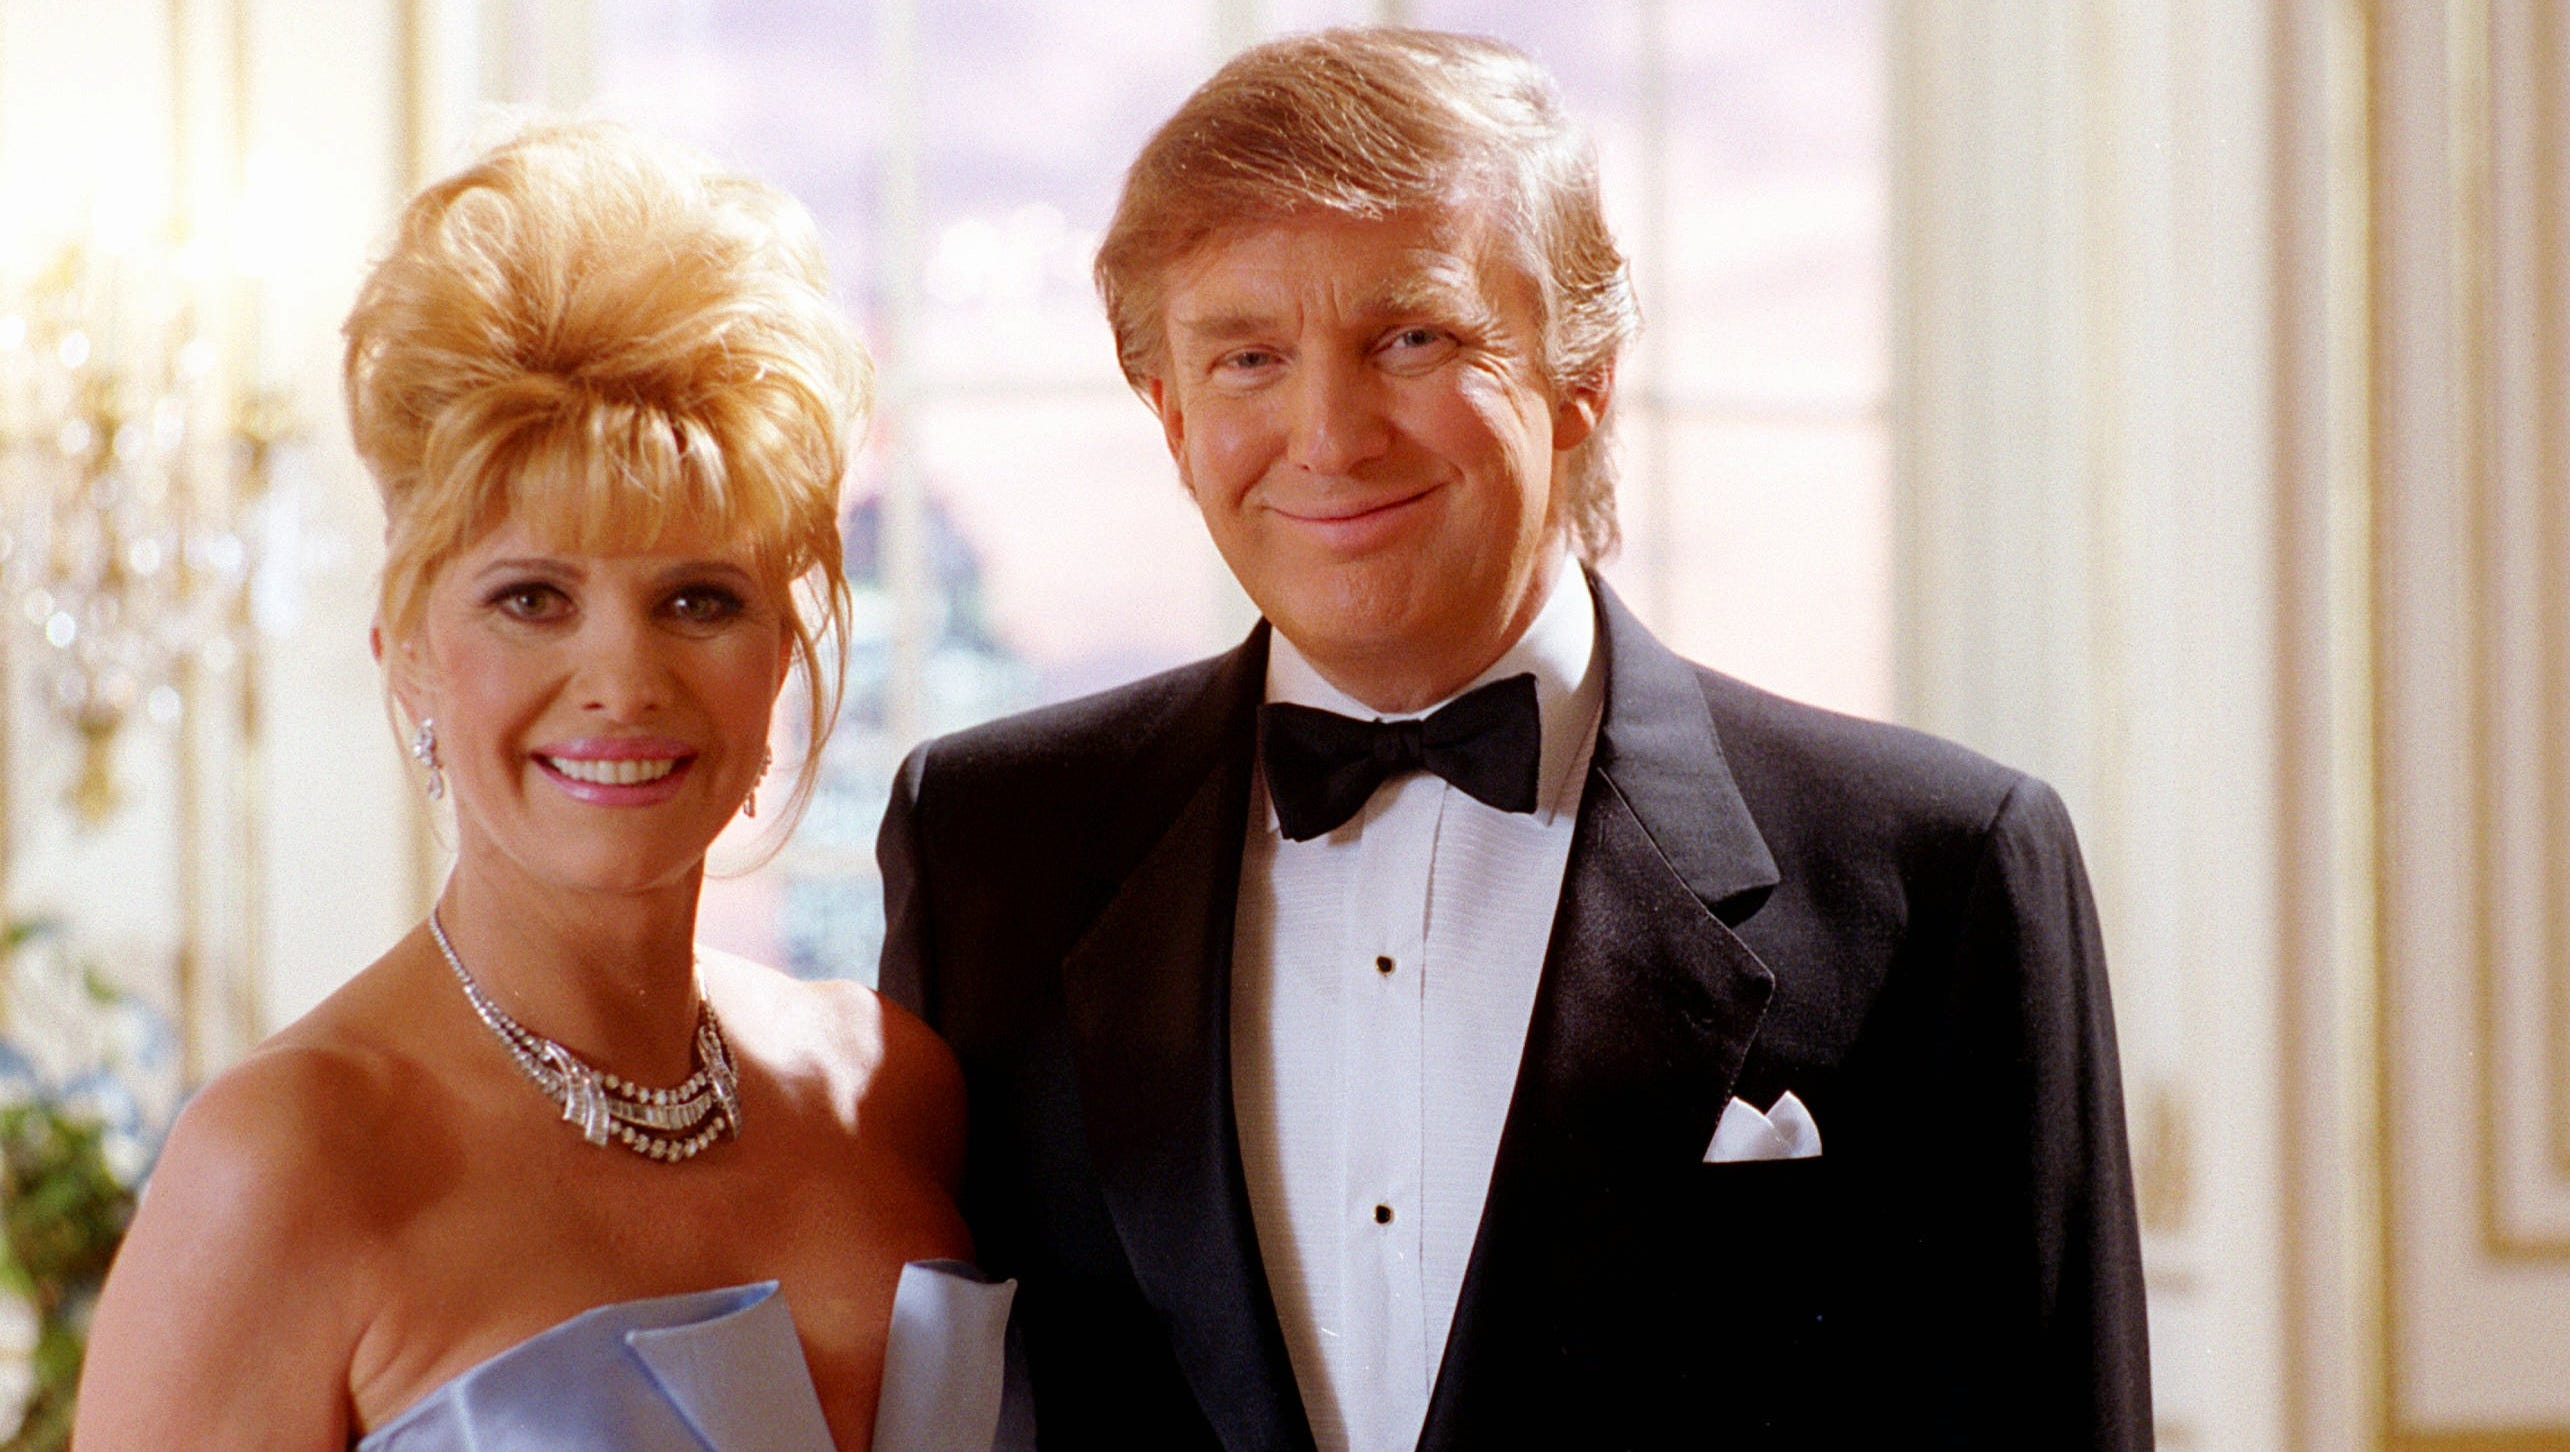 Gannett and N.Y. Times ask court to unseal 1990 Trump divorce records